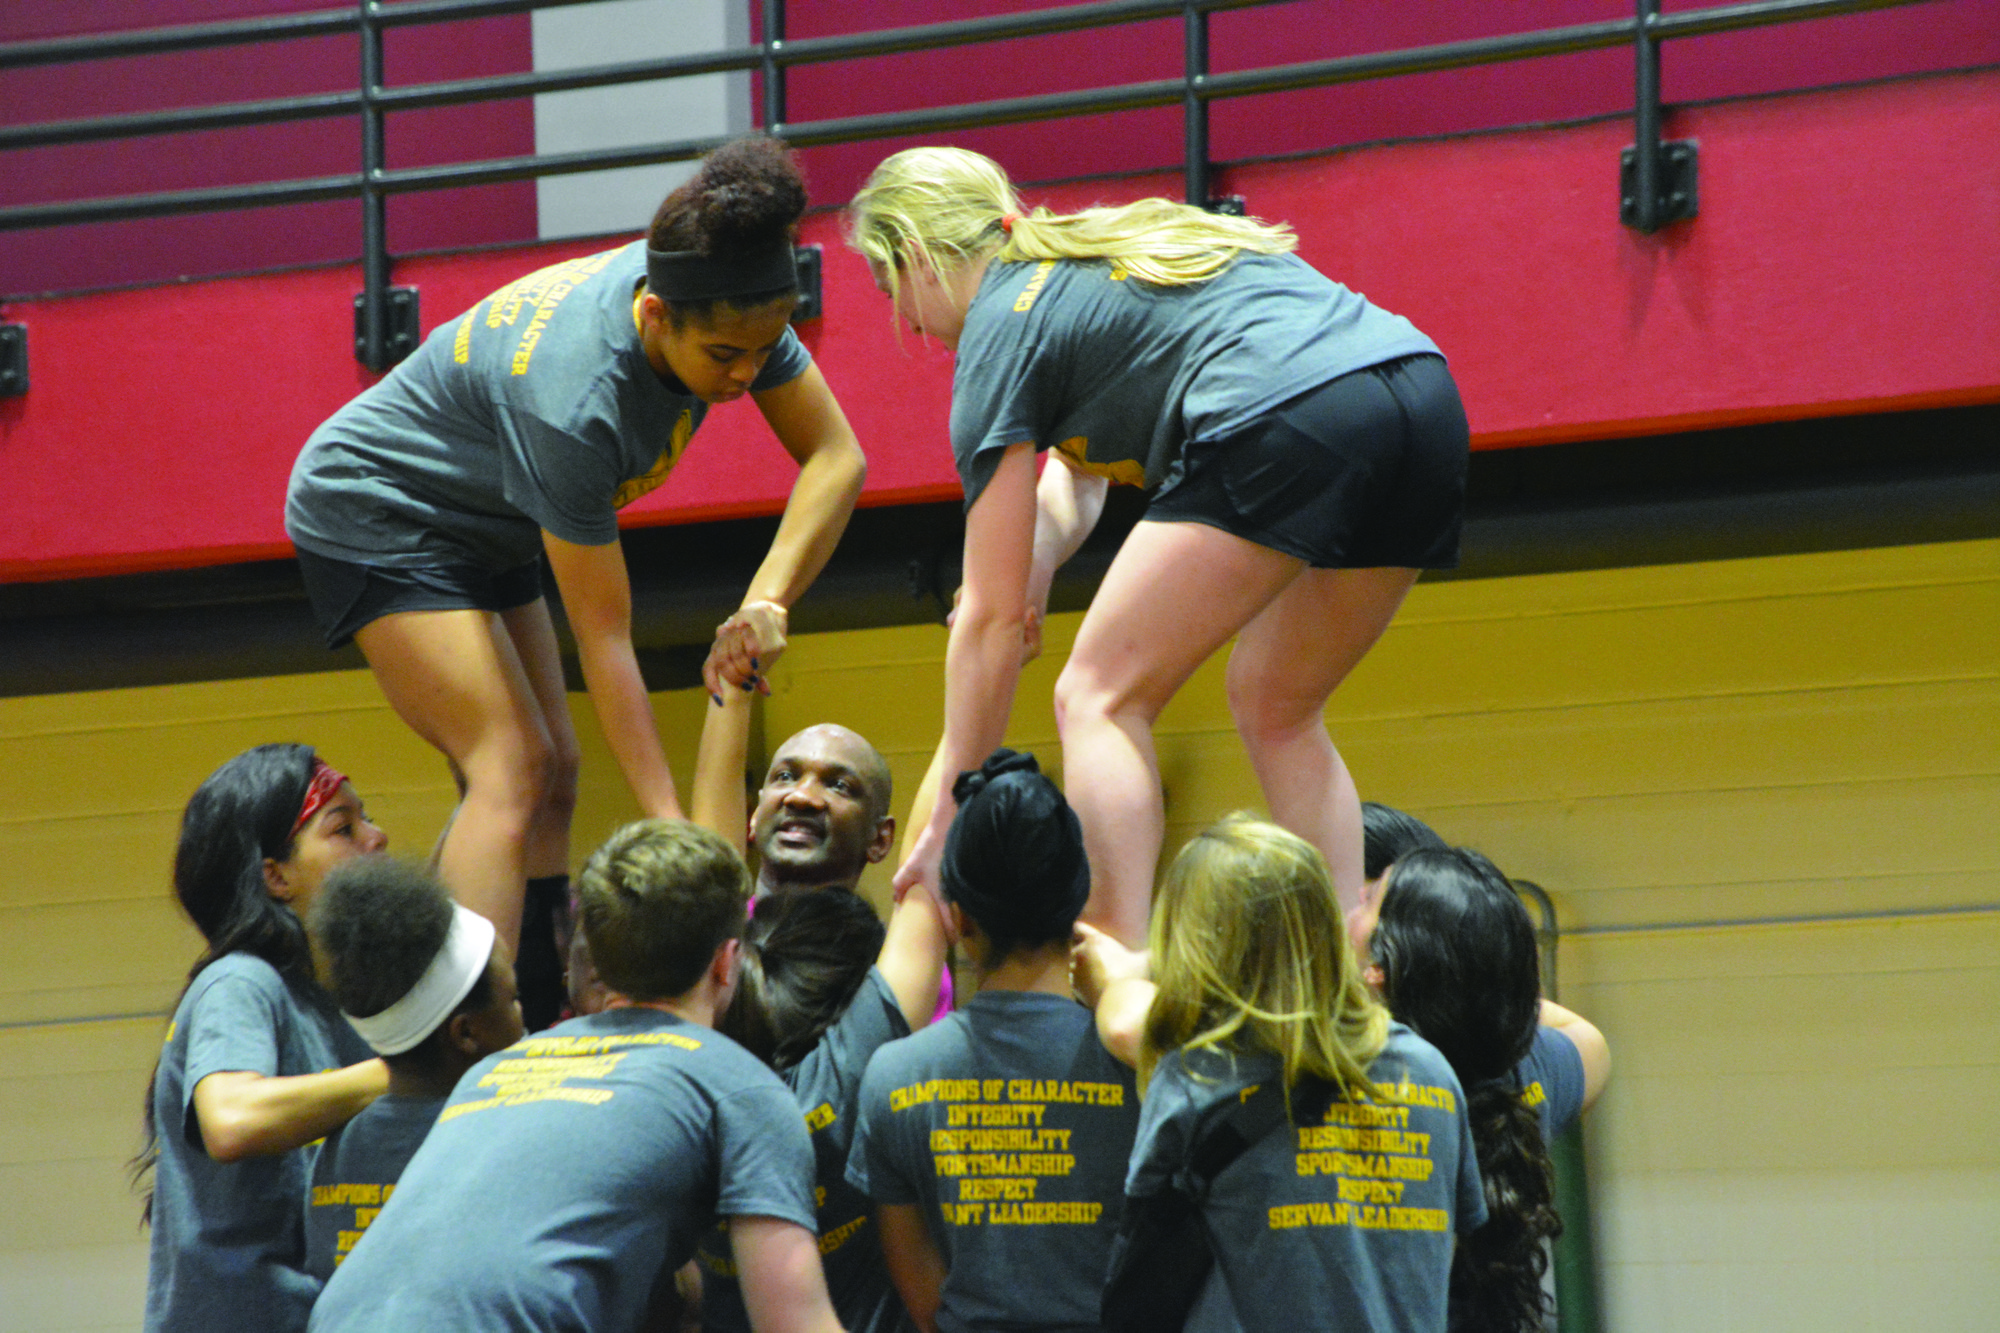 The cheer and dance teams look to improve in their inaugural season